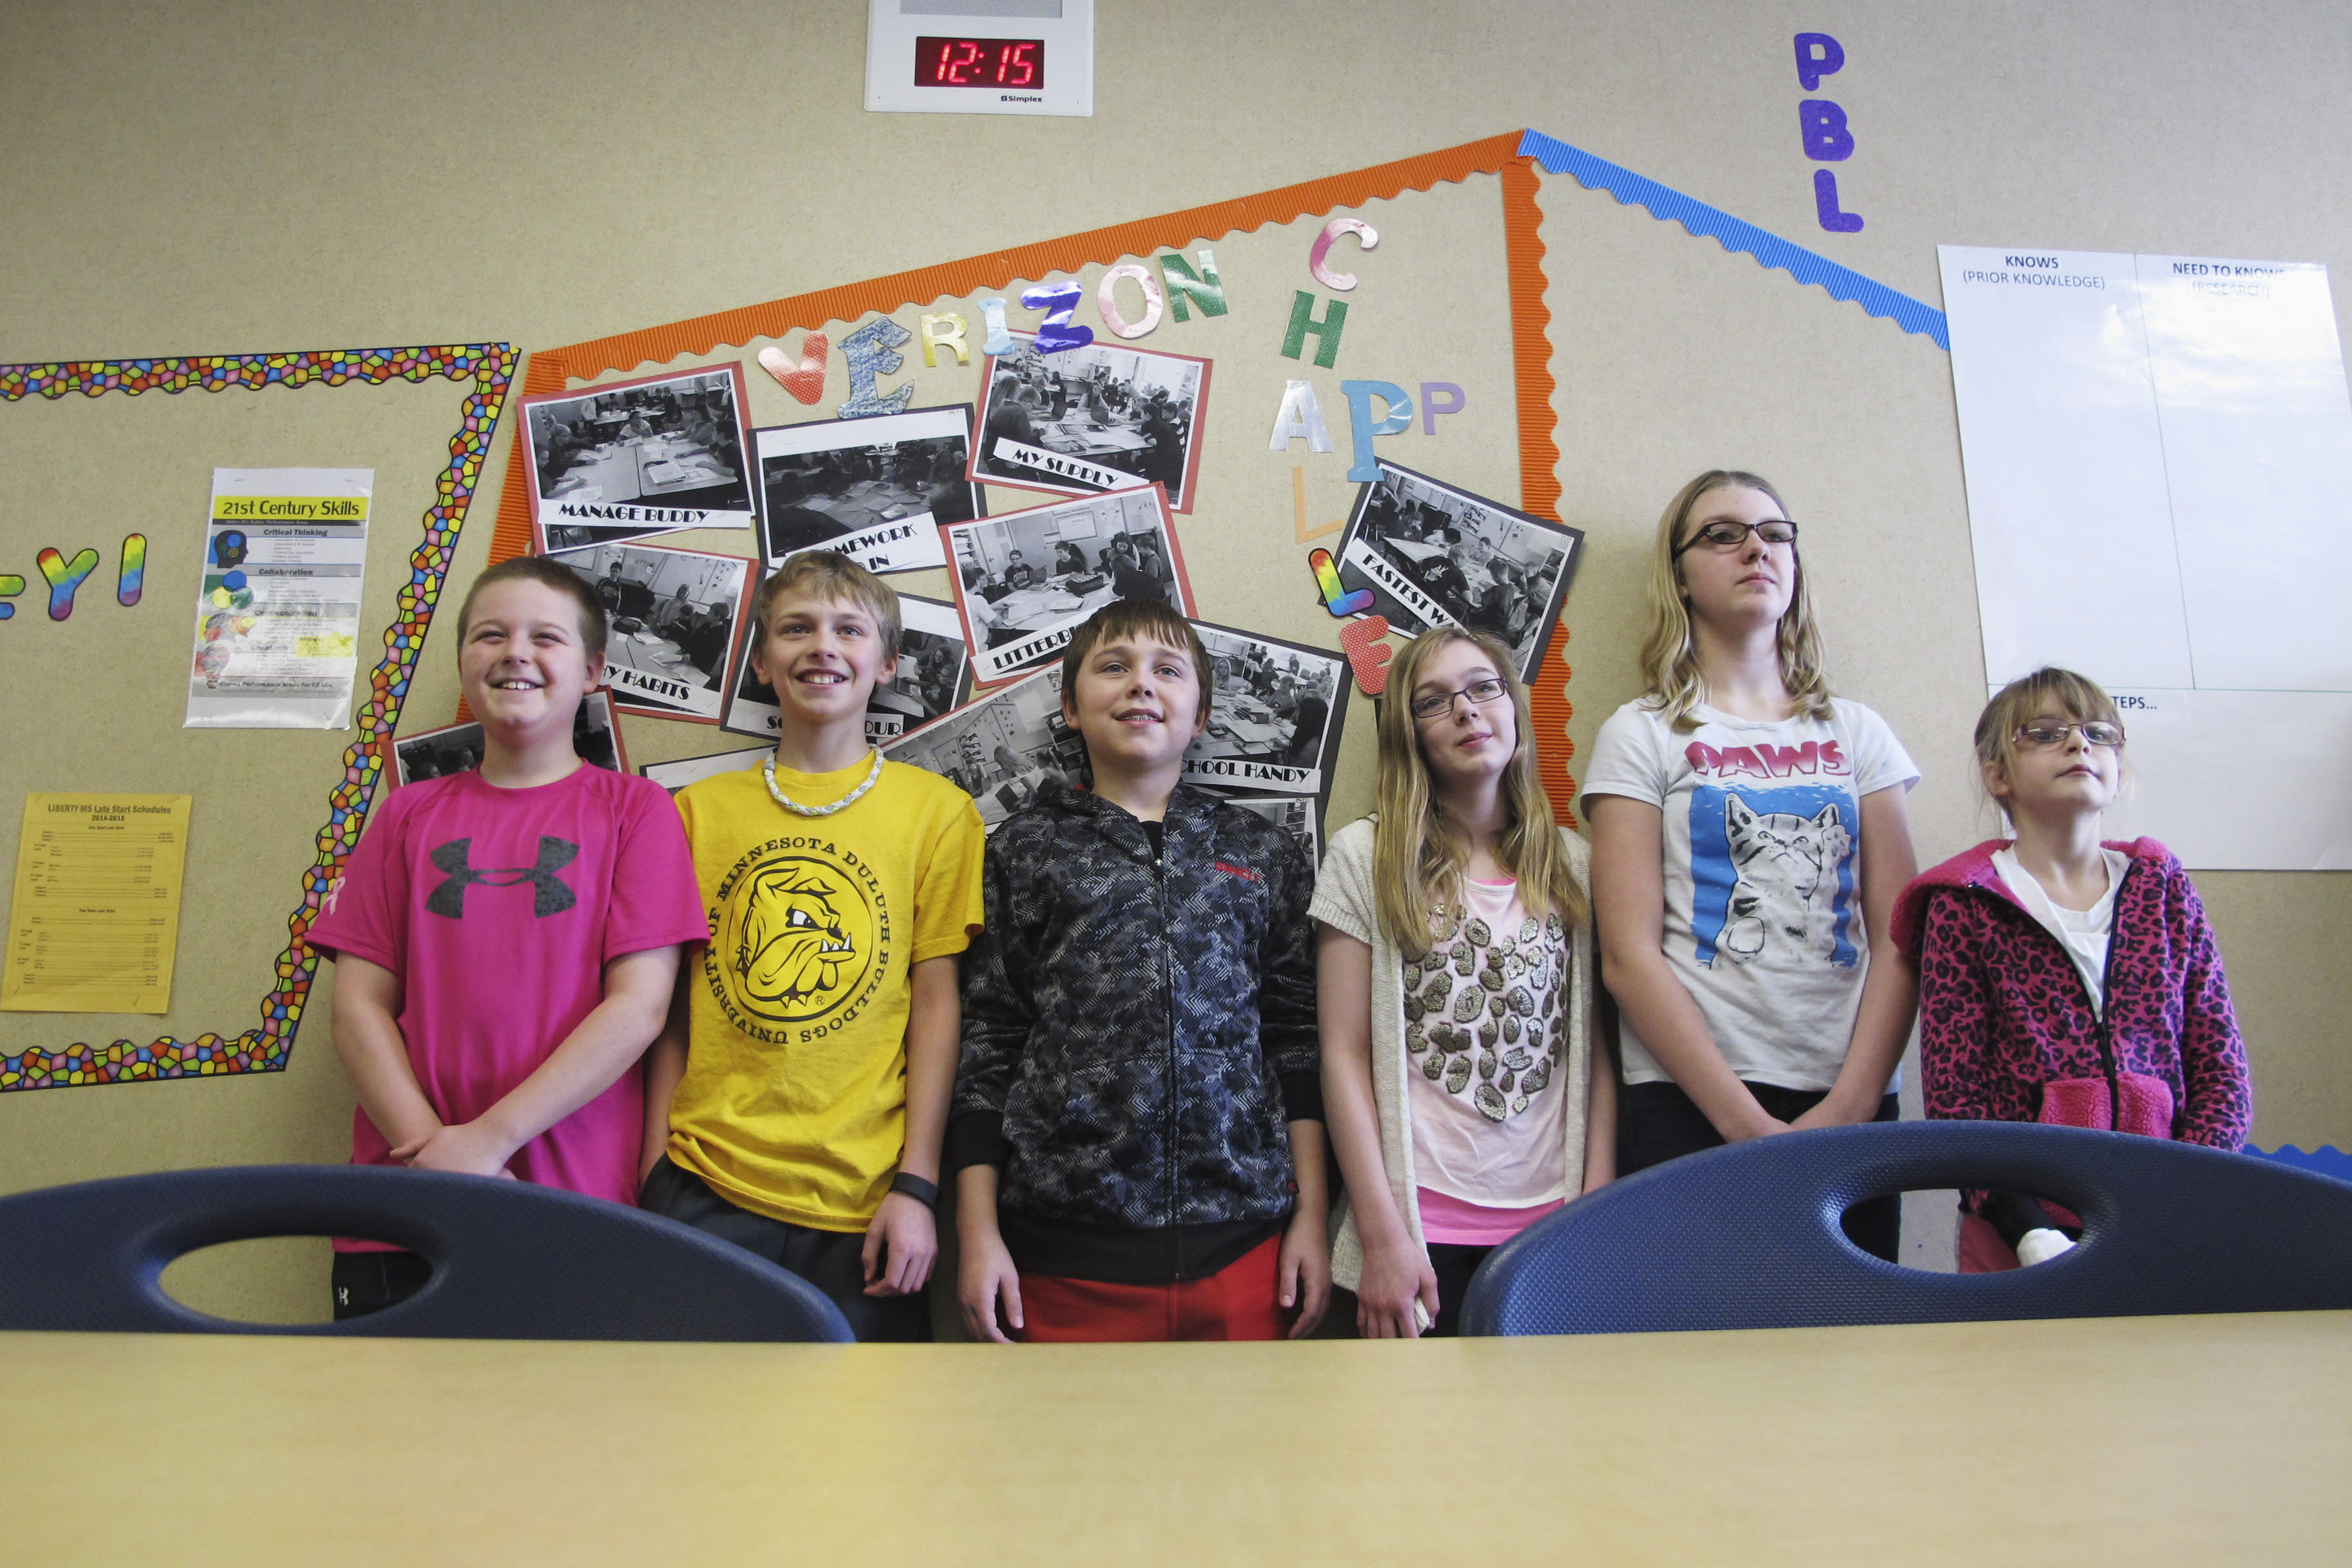 West Fargo 6th-graders build app to help class start on time